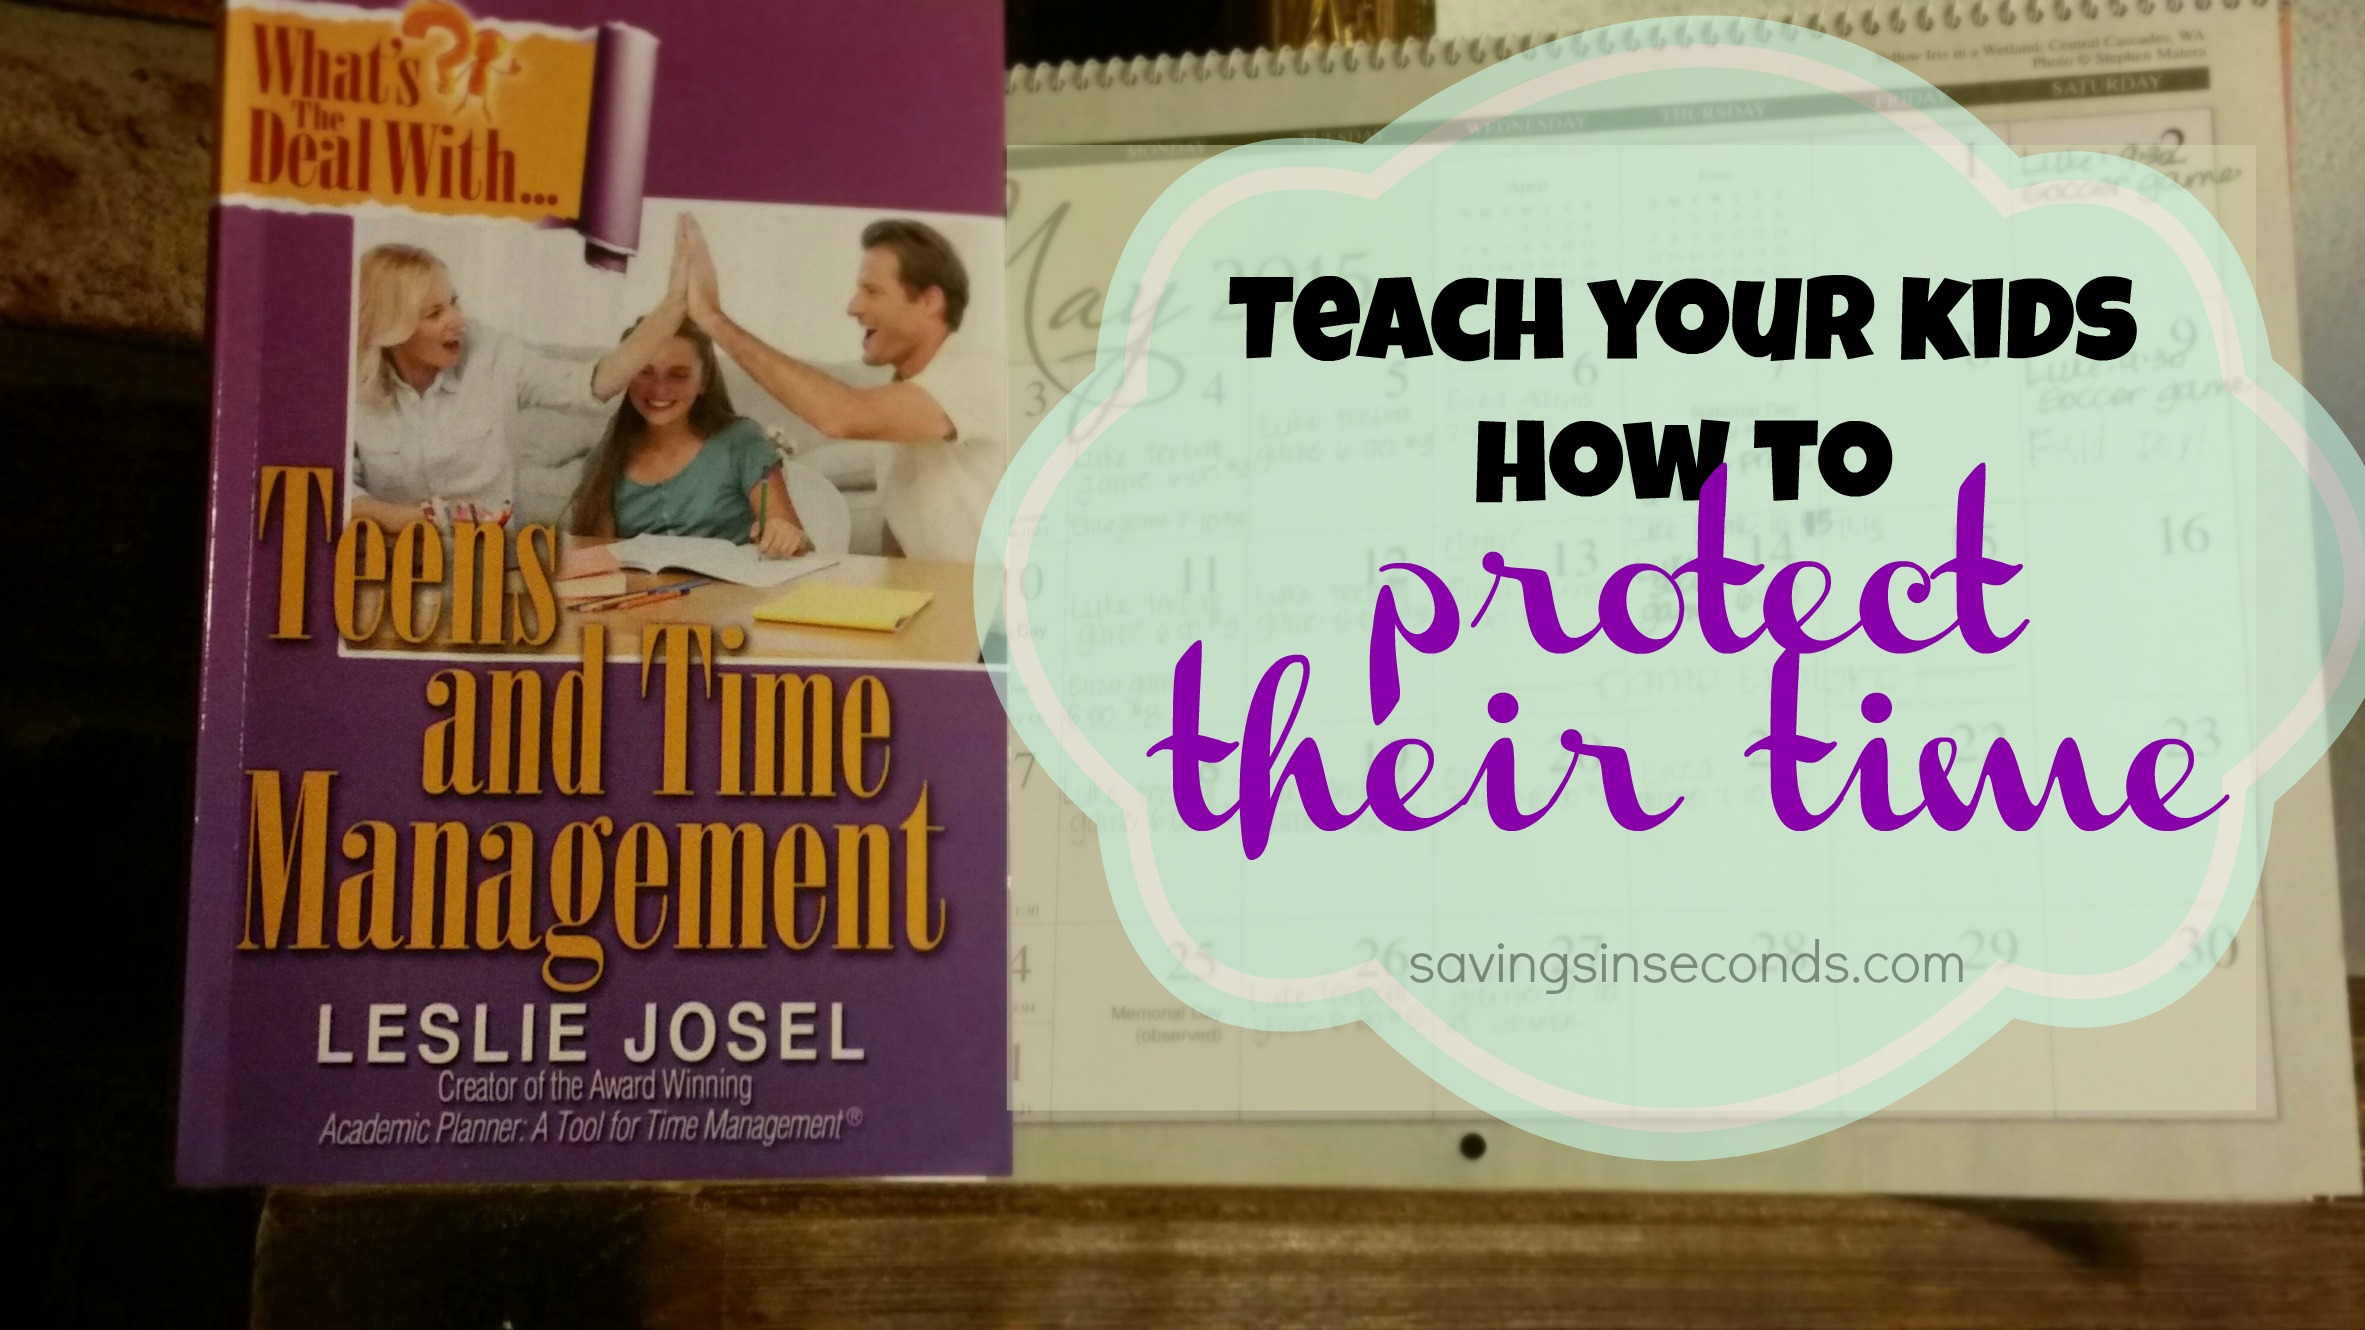 Teens And Time Management By Leslie Josel Teensandtime